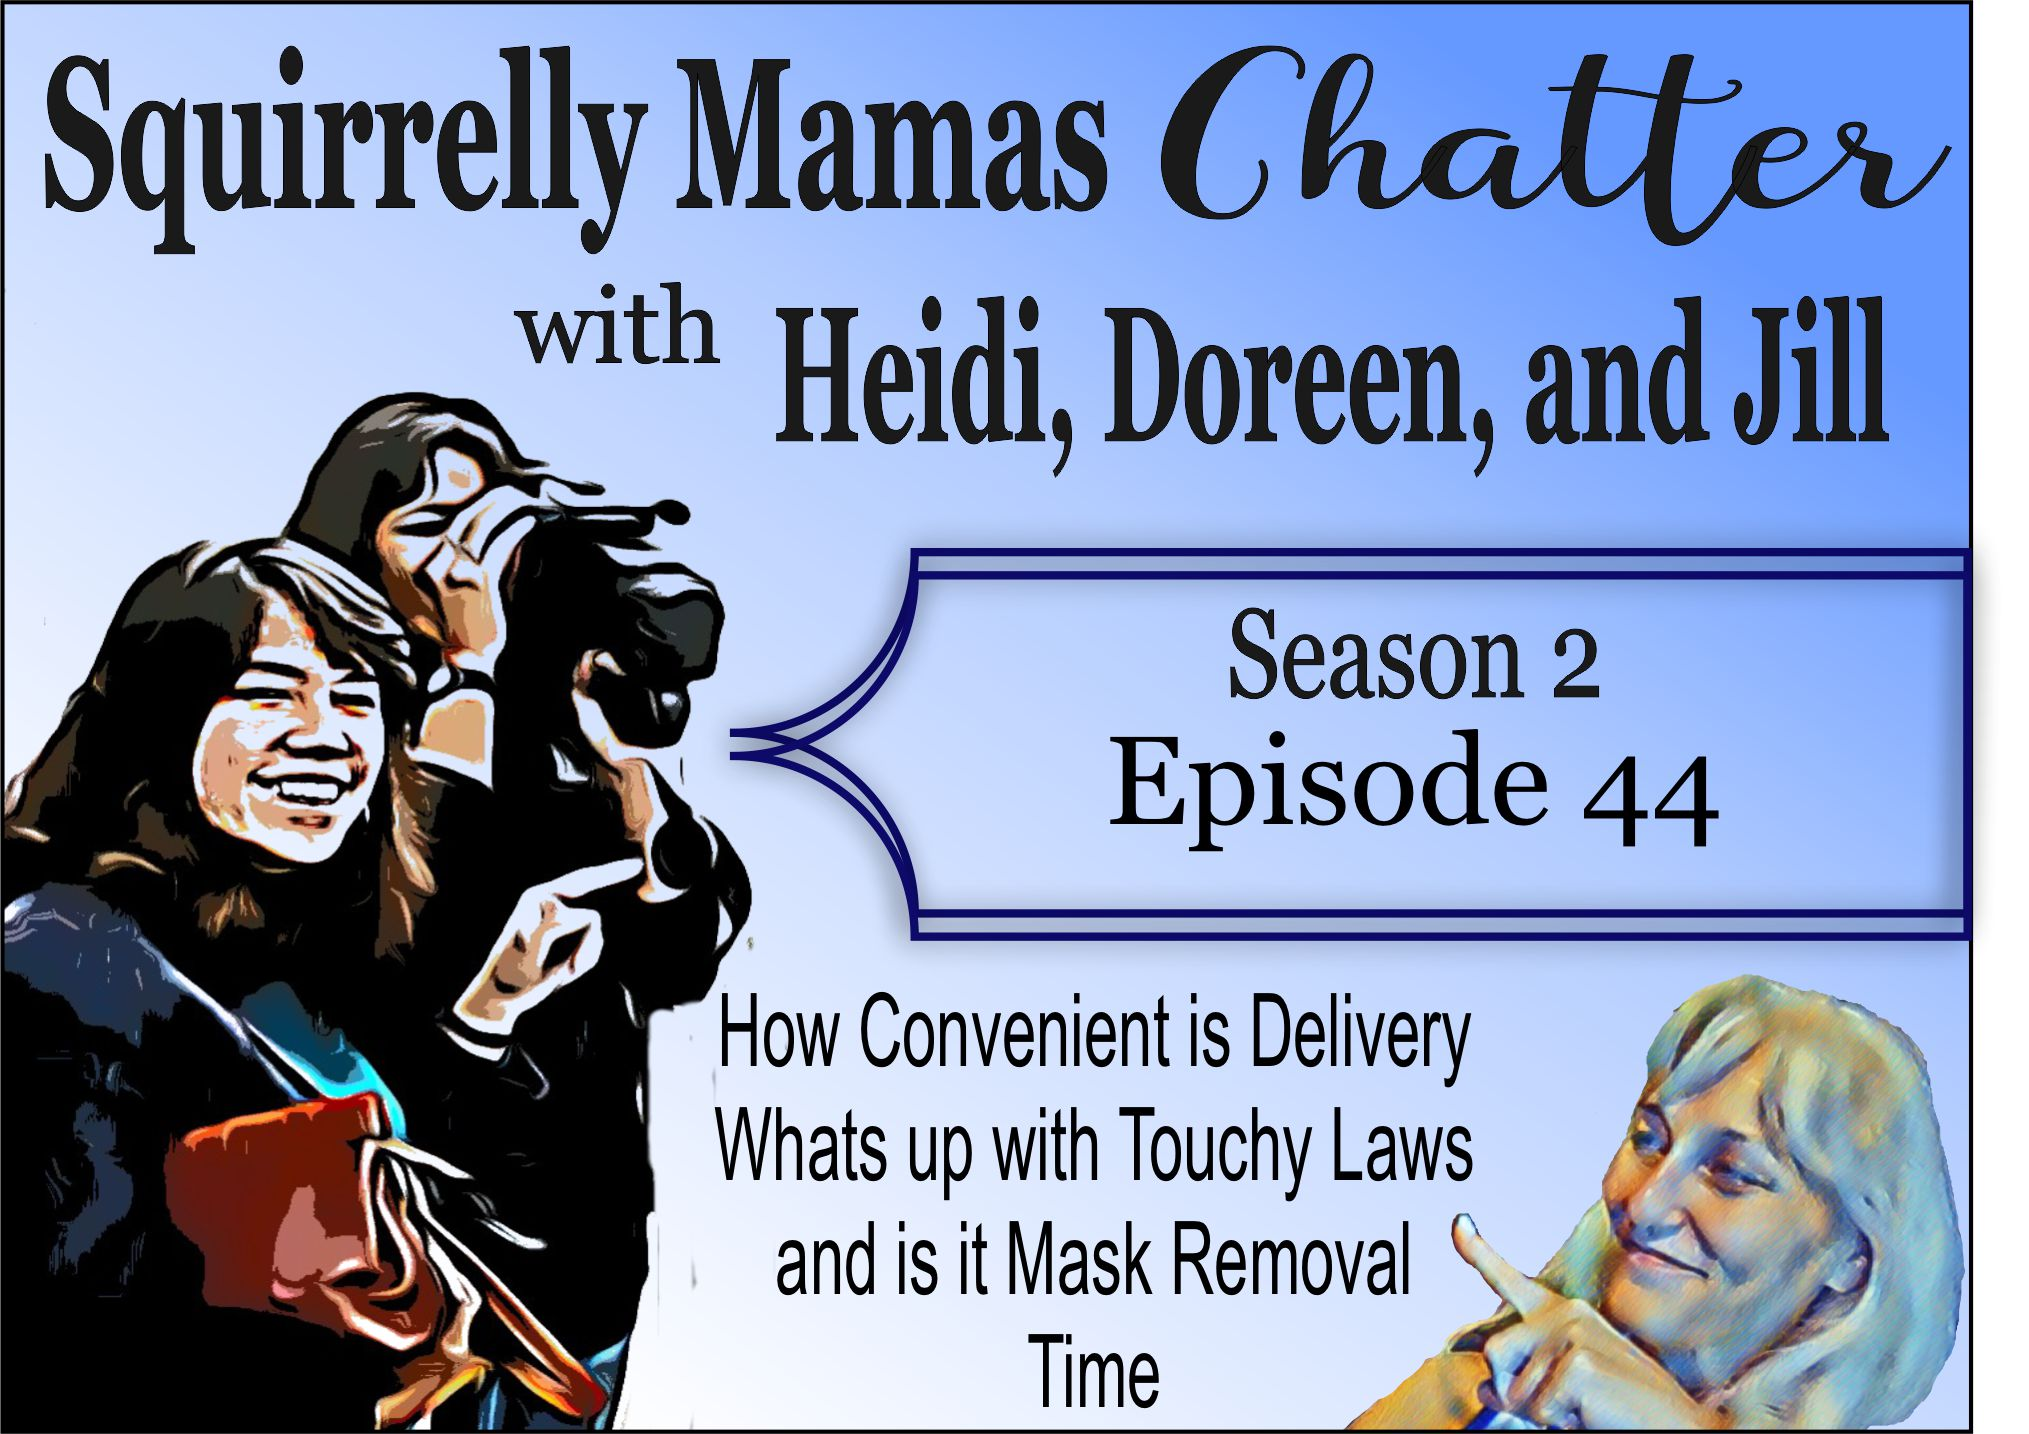 044 How Delivery makes Life Convenient, Touchy Laws and is it Mask Removal Time